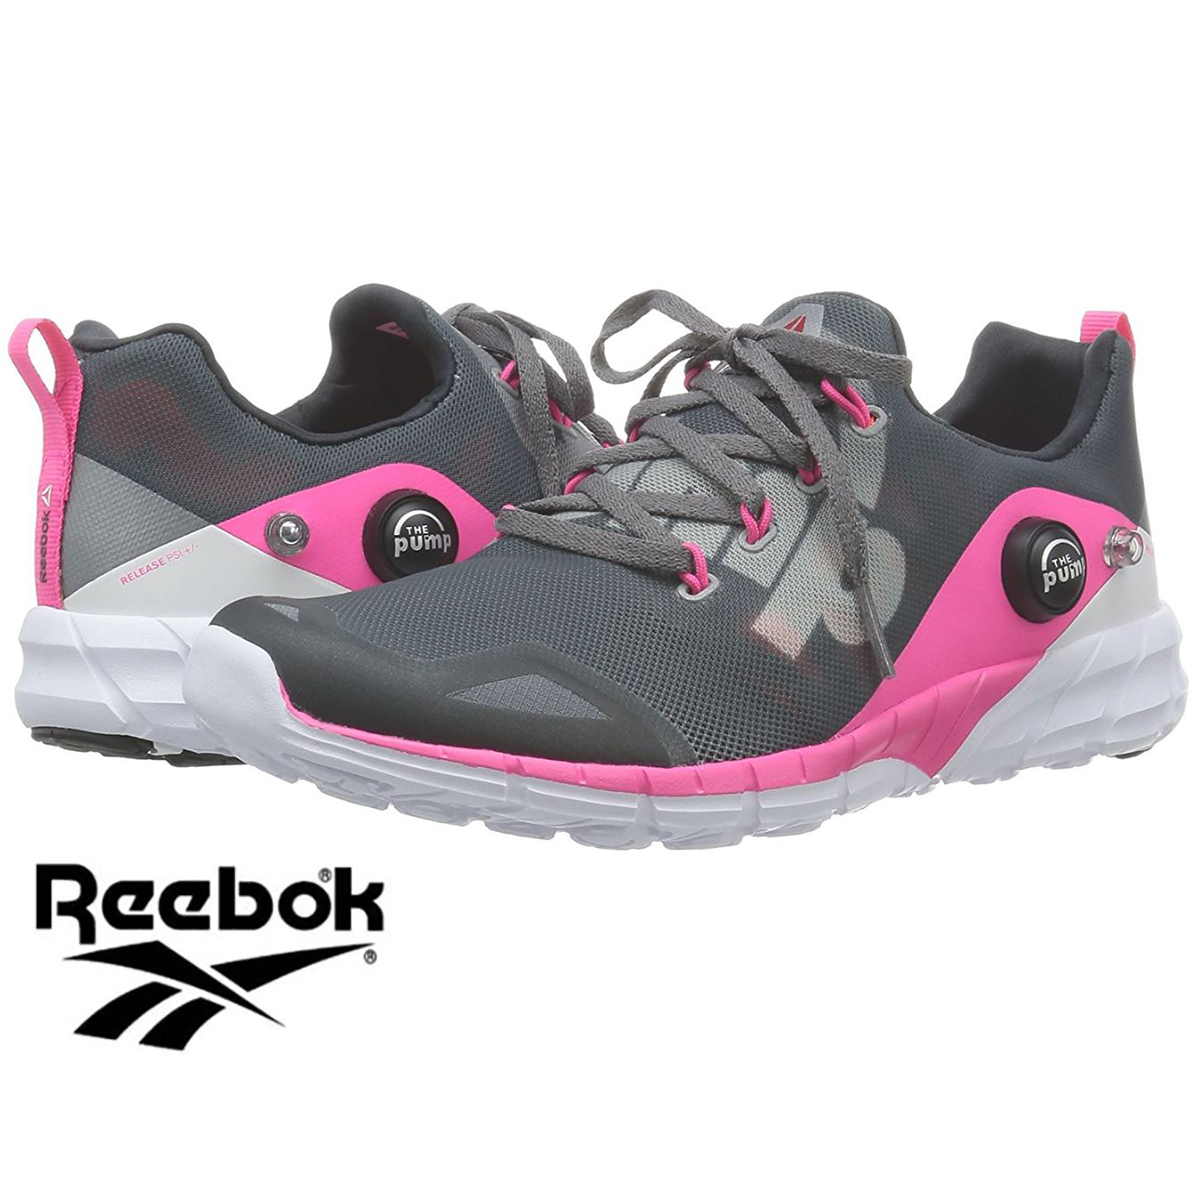 Details about Reebok ZPump Fusion 2.0 Womens Sports Running Shoes Trainers  New ALL SIZES eb6e22f58